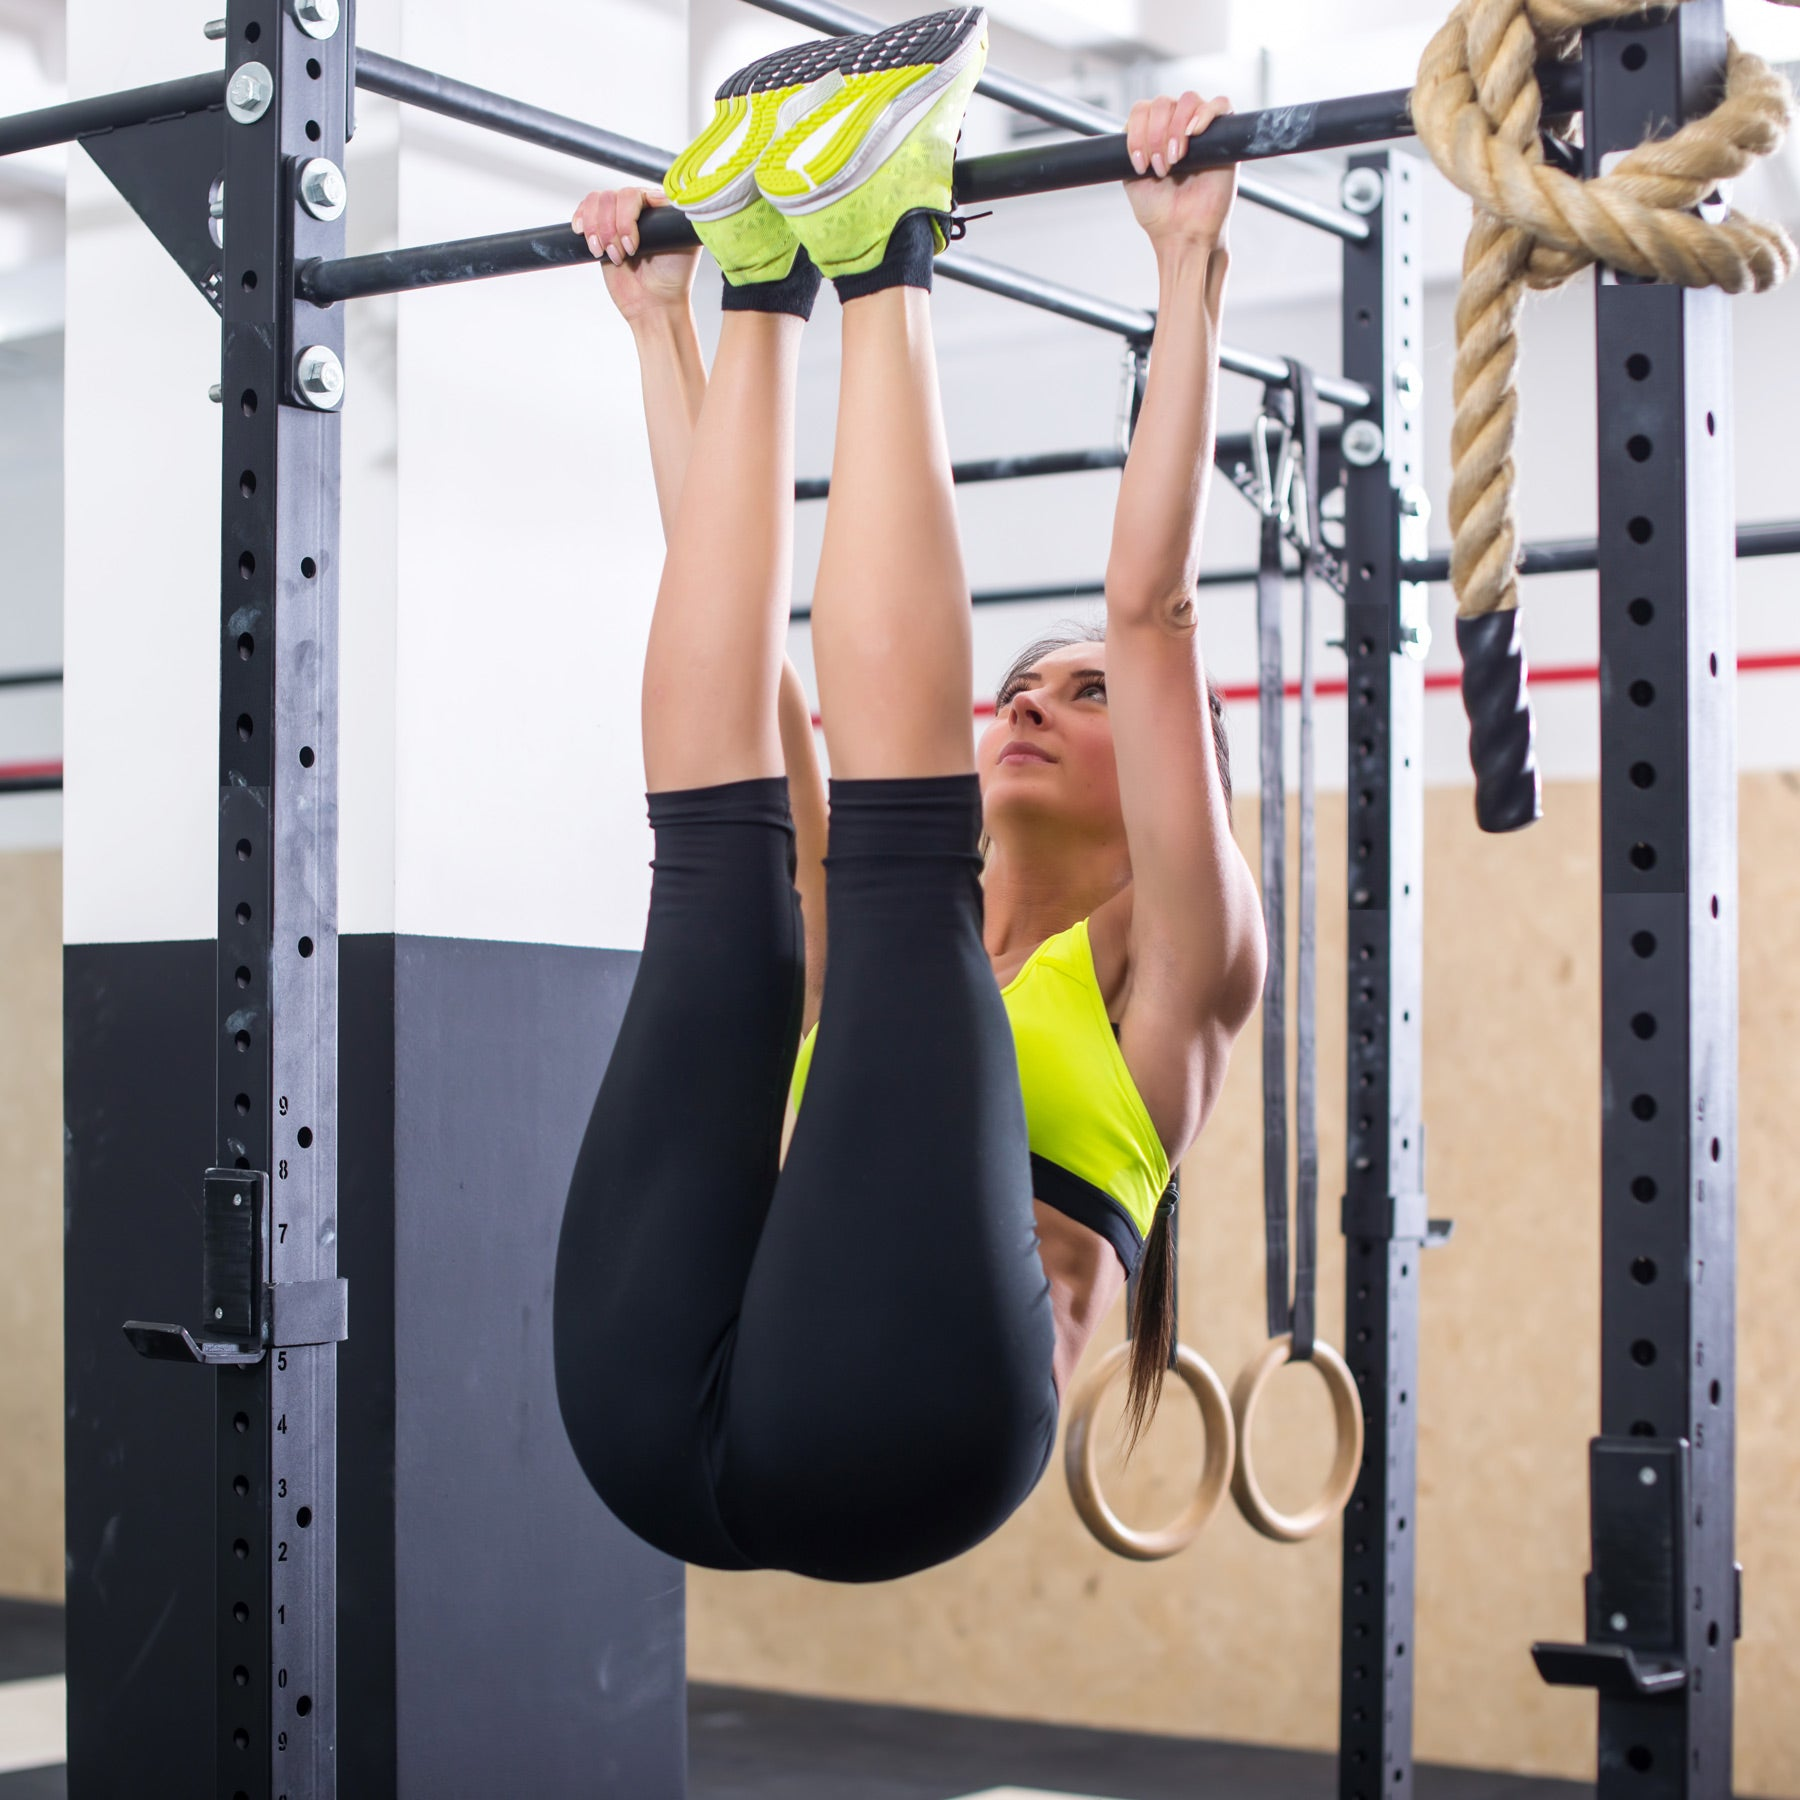 woman practicing toes to bar exercise in gym